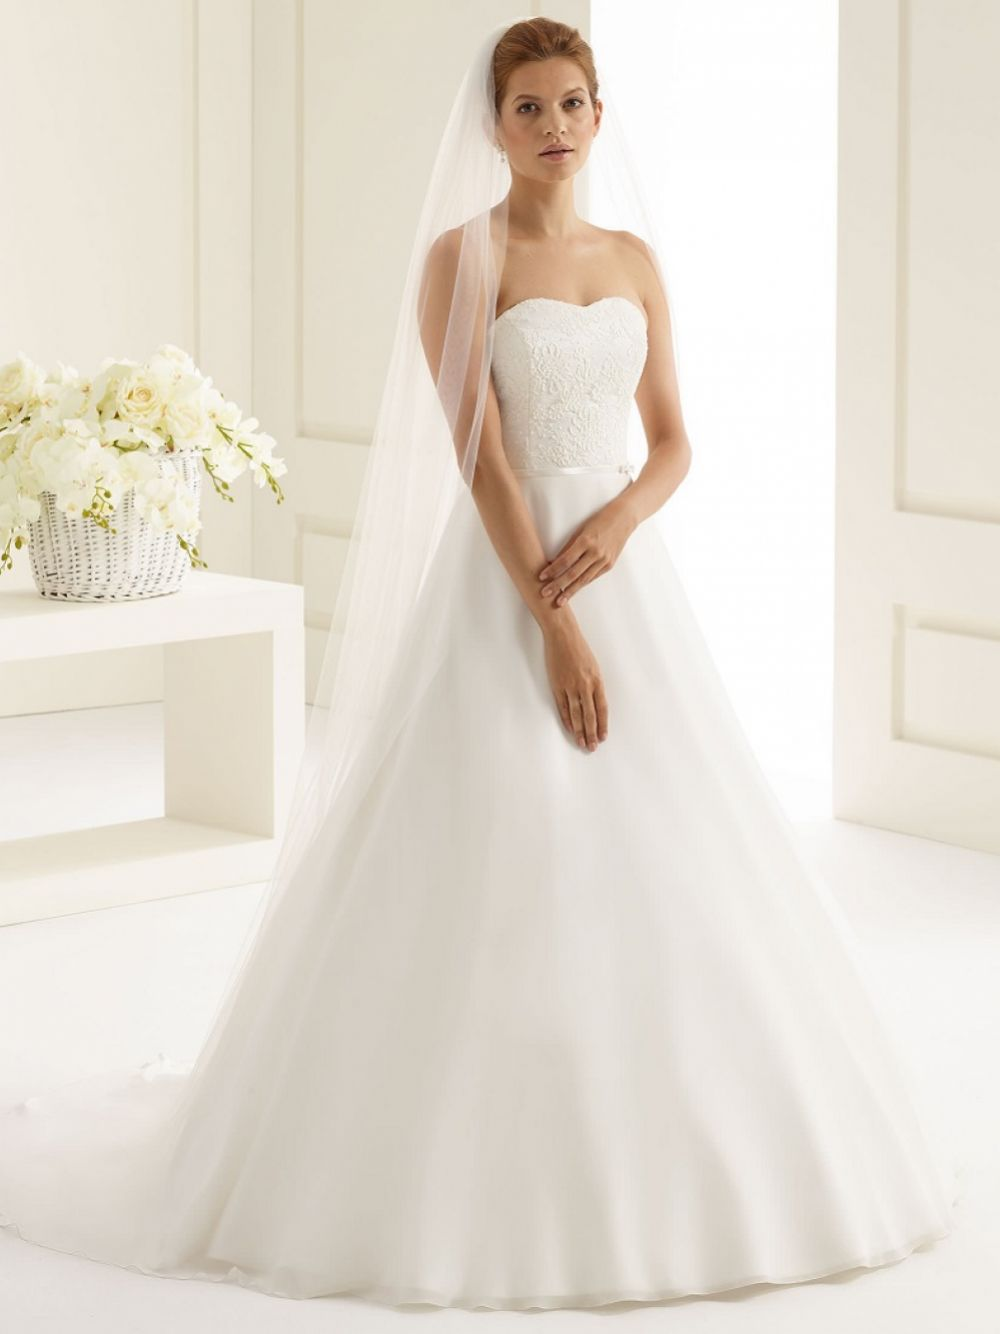 Bianco Ivory Plain Single Tier Floor Length Veil with Cut Edge S227